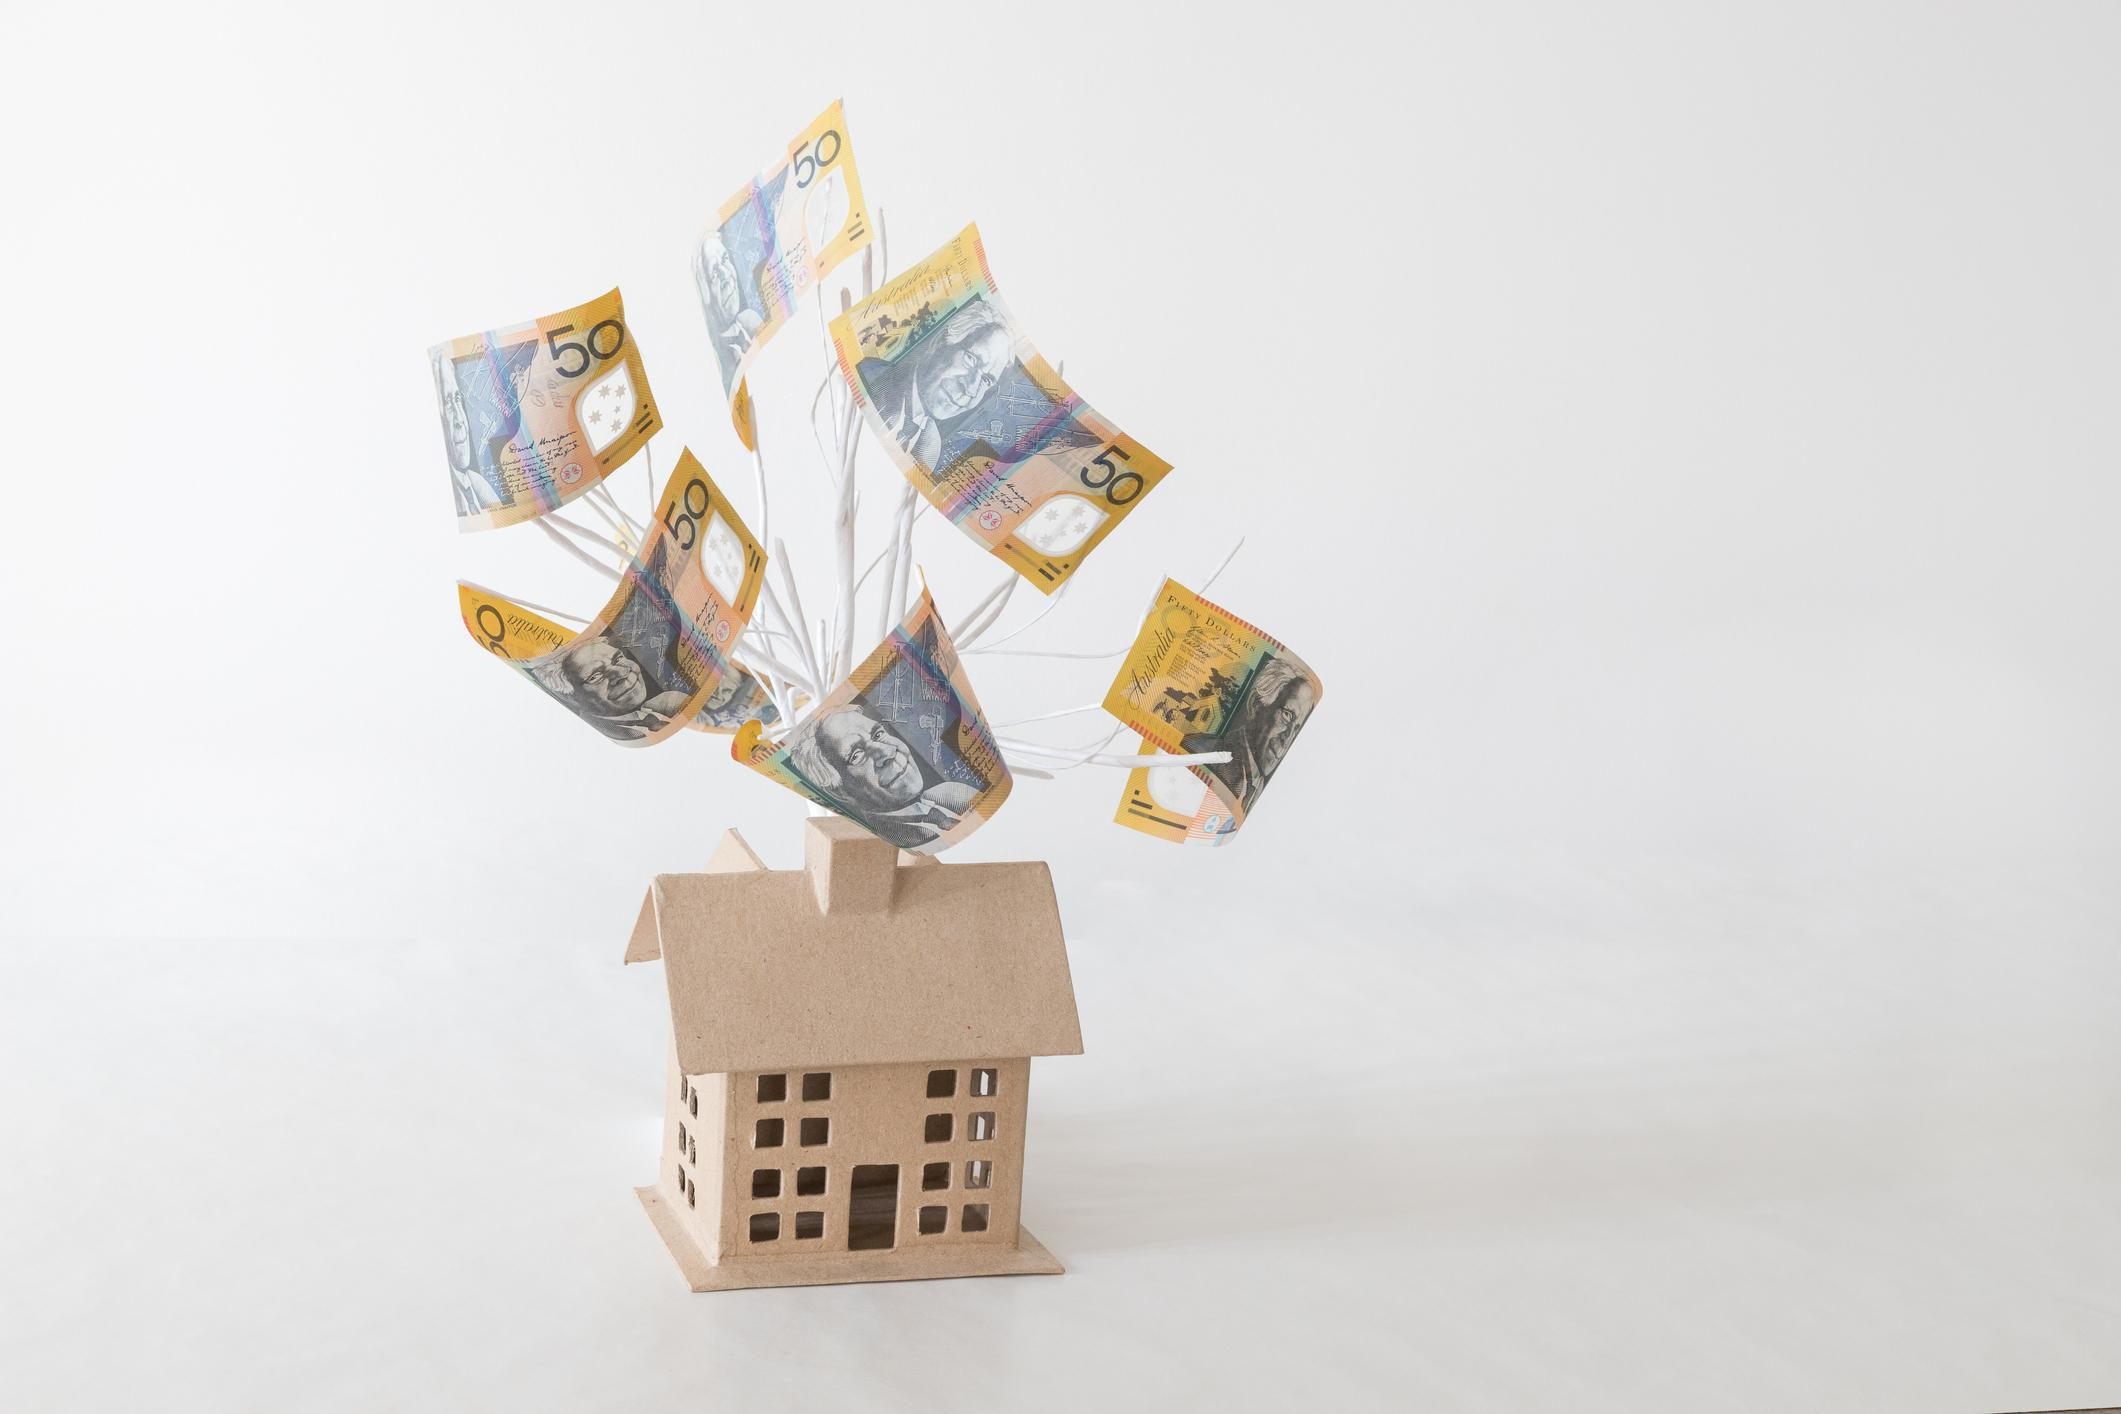 Should I pay off my mortgage or buy an investment property?